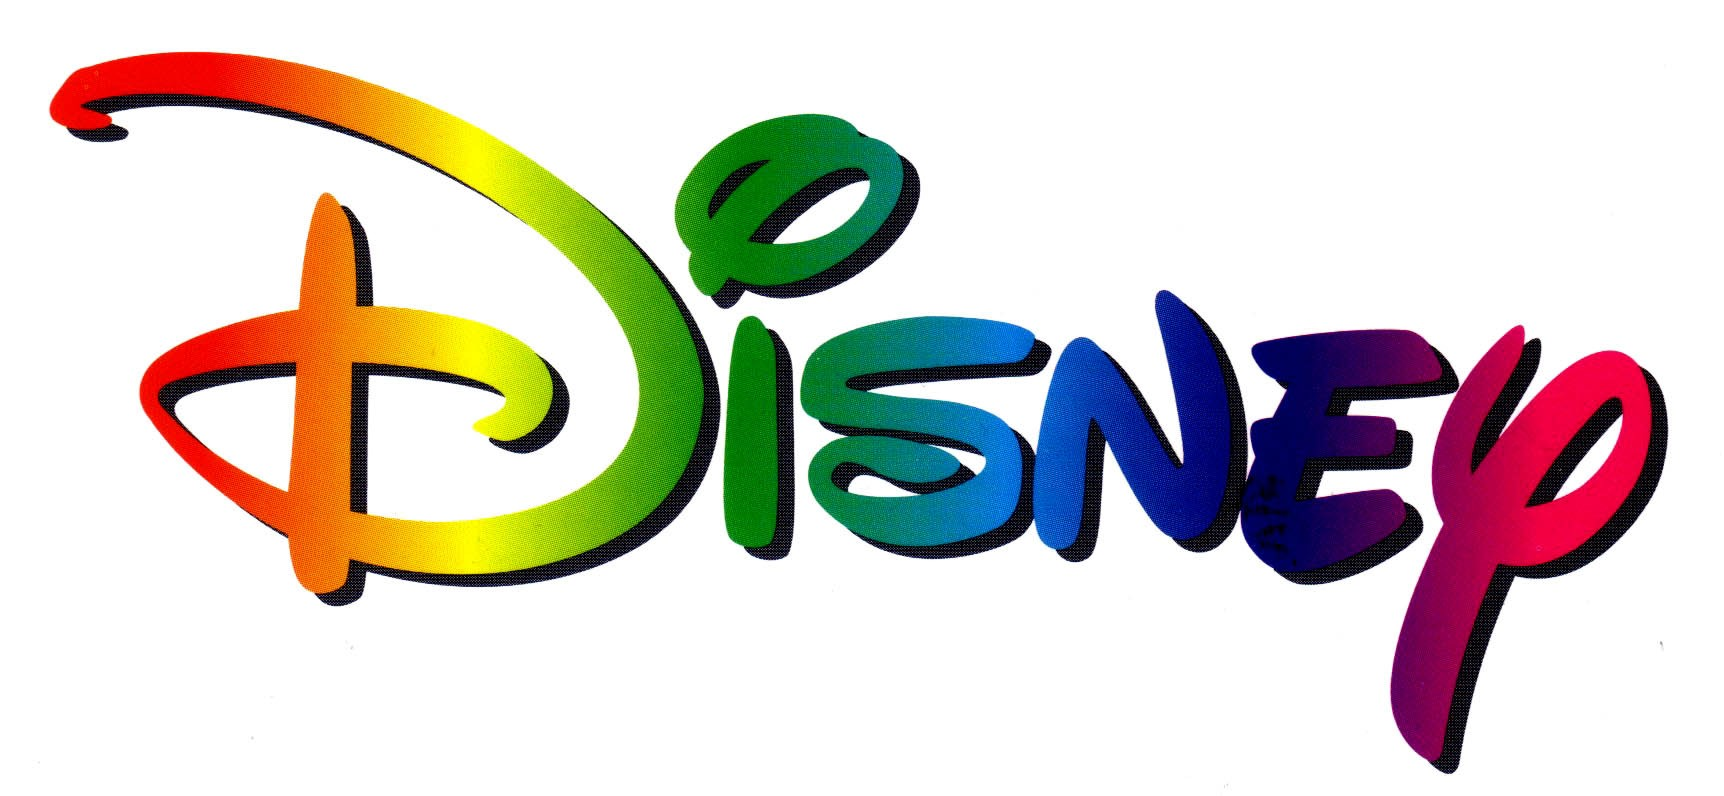 Disney Png Hd - Walt Disney 50 Animated Motion Pictures #30226 - PNG Images - PNGio